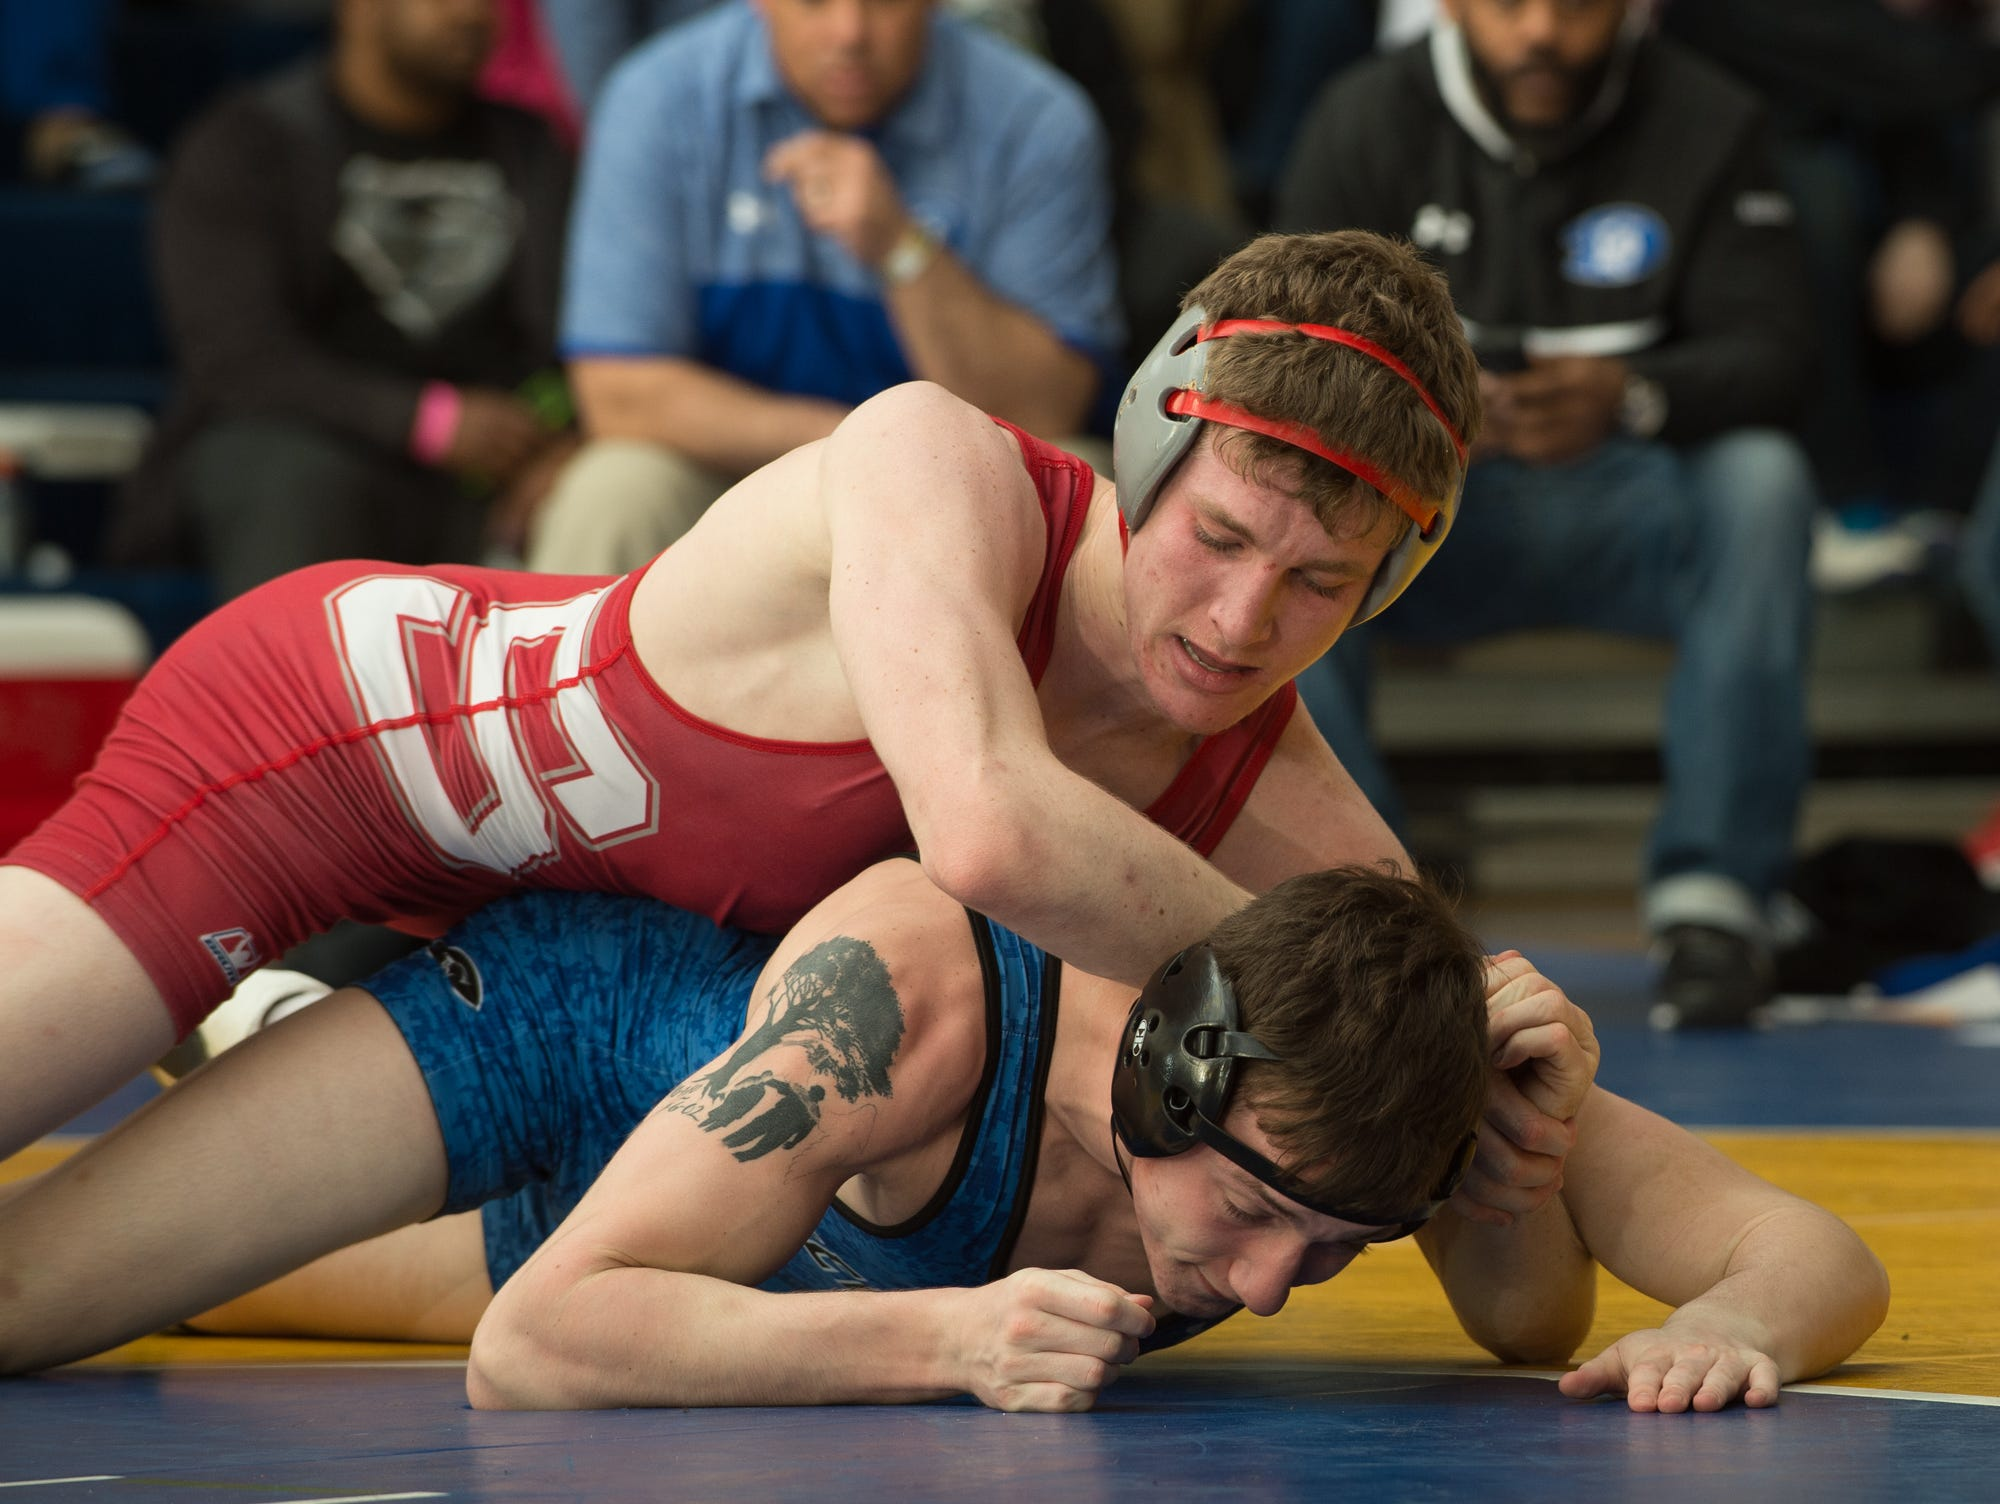 Smyrna's Chase Archangelo holds Dover's Nicholas Lee down on the mat in the 145 pound championship match at the Henlopen Conference wrestling tournament at Sussex Central High School.